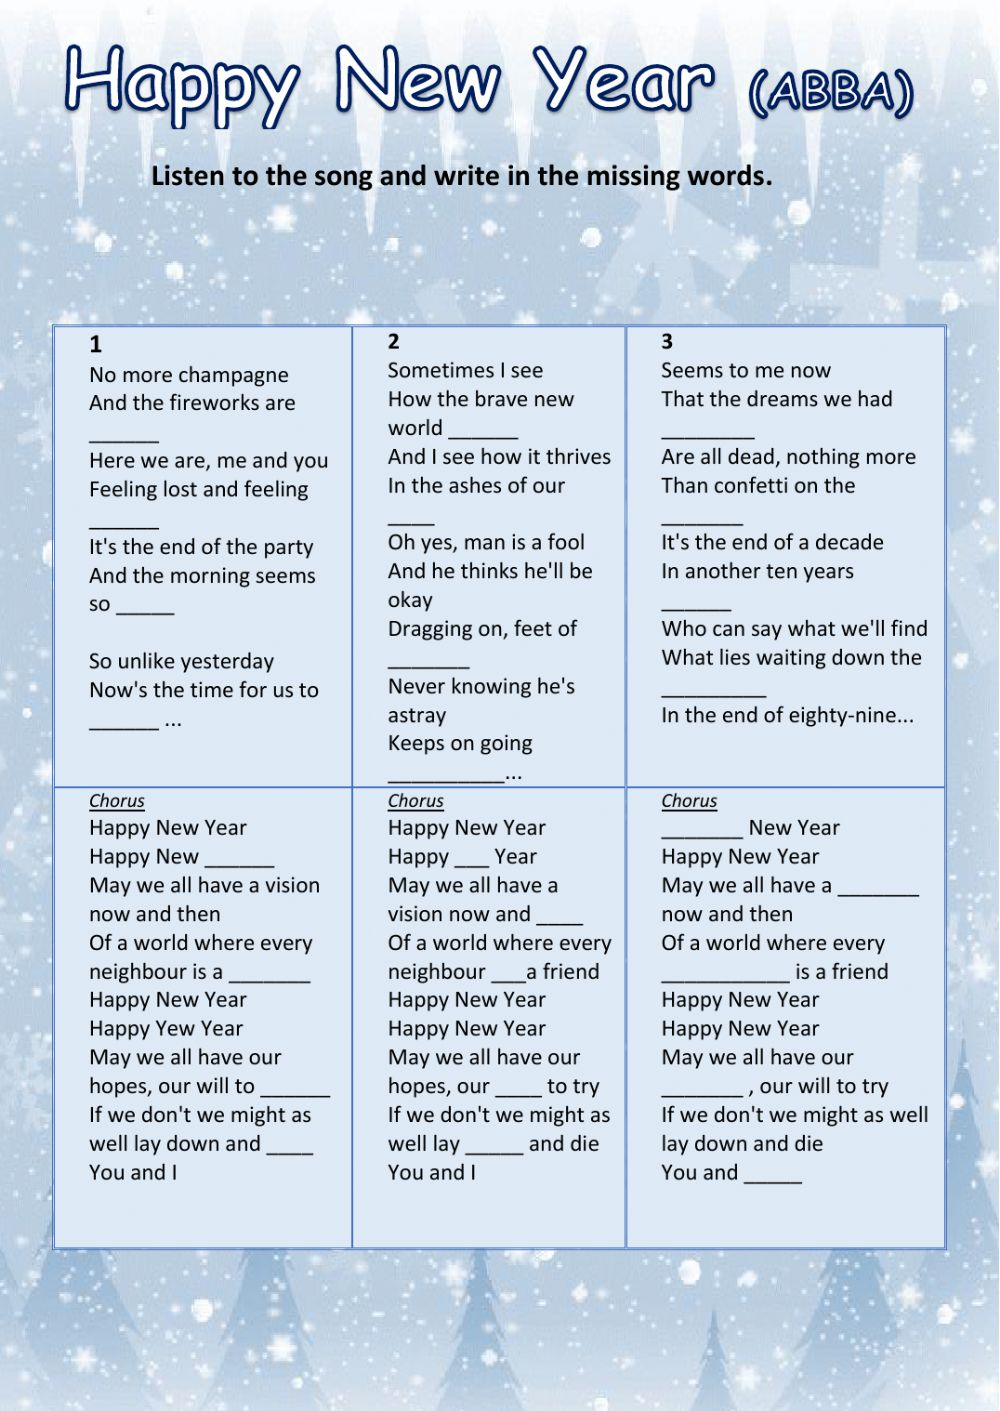 HAPPY NEW YEAR (ABBA) - Interactive worksheet